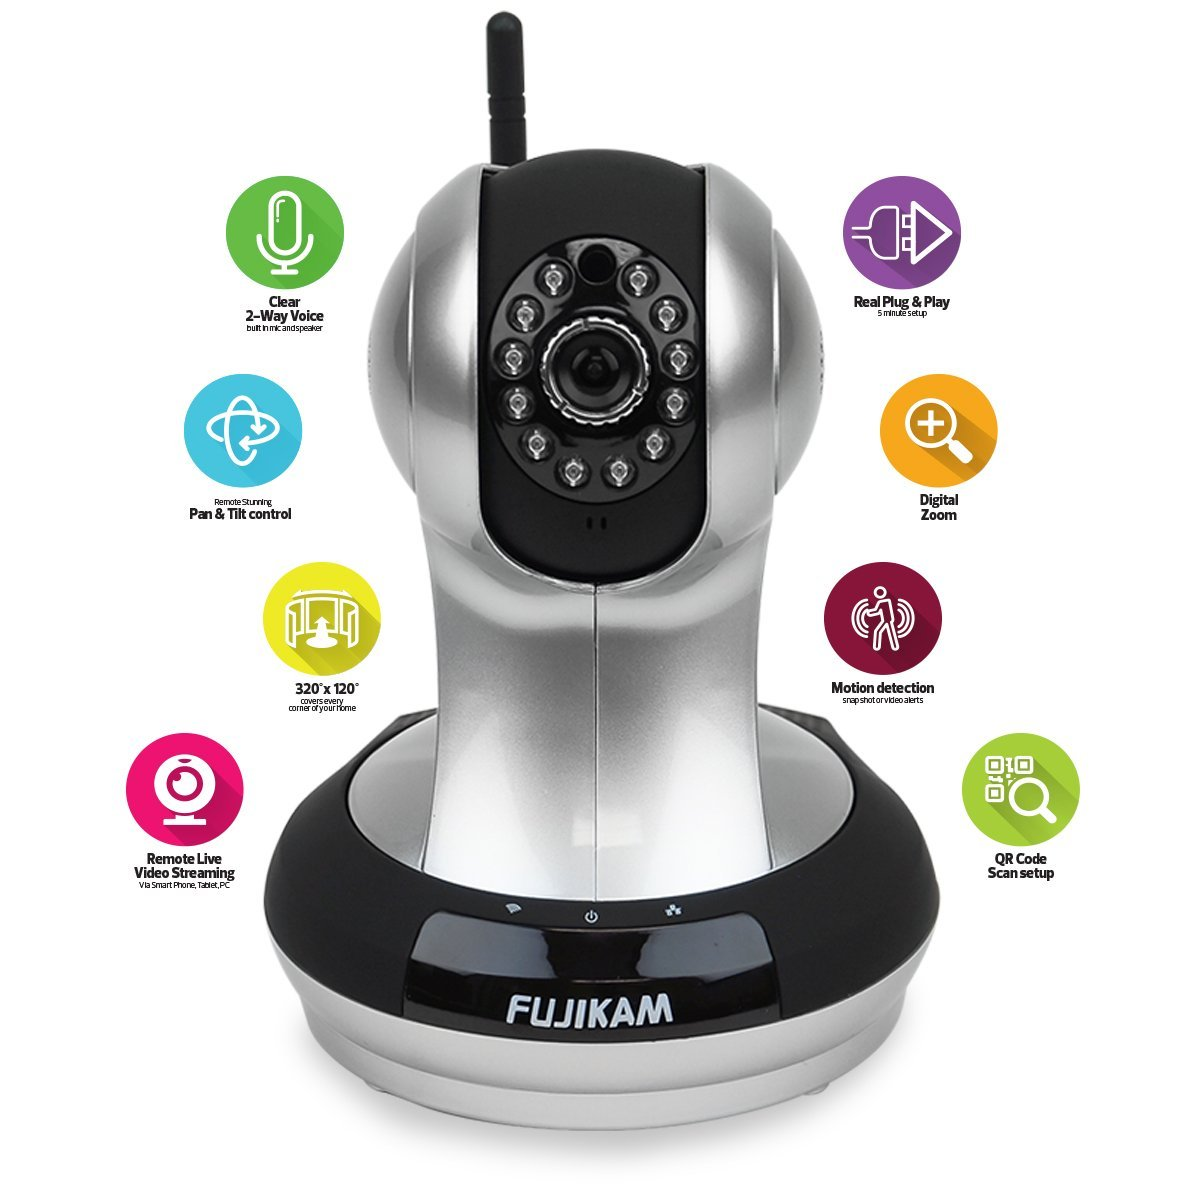 Fujikam FI-361 HD, Wifi, Video Monitoring, Surveillance, security camera